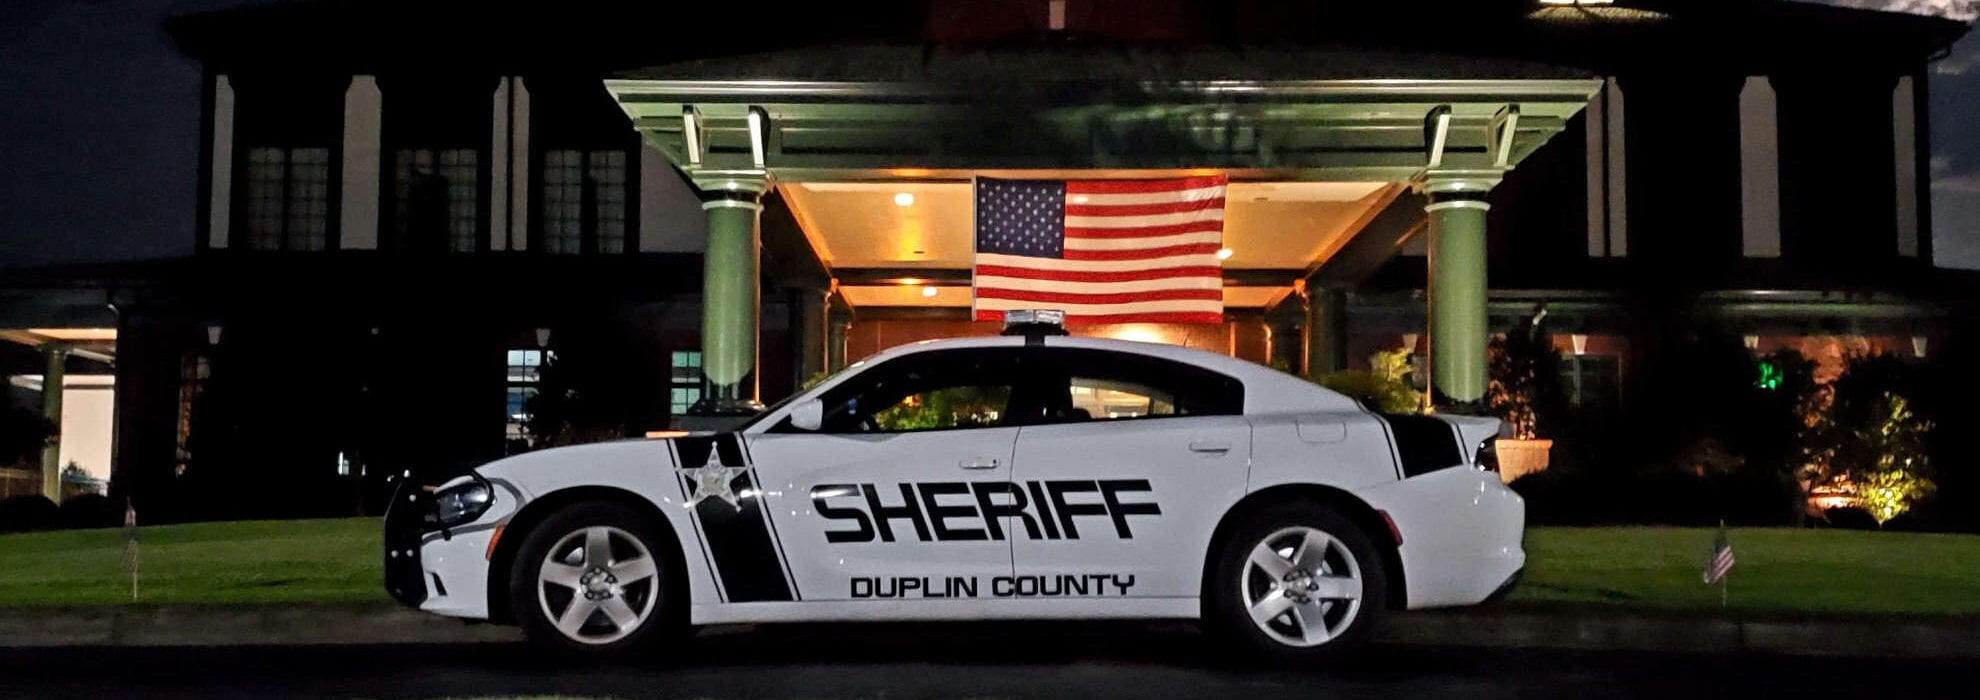 Duplin County Sheriff's Department